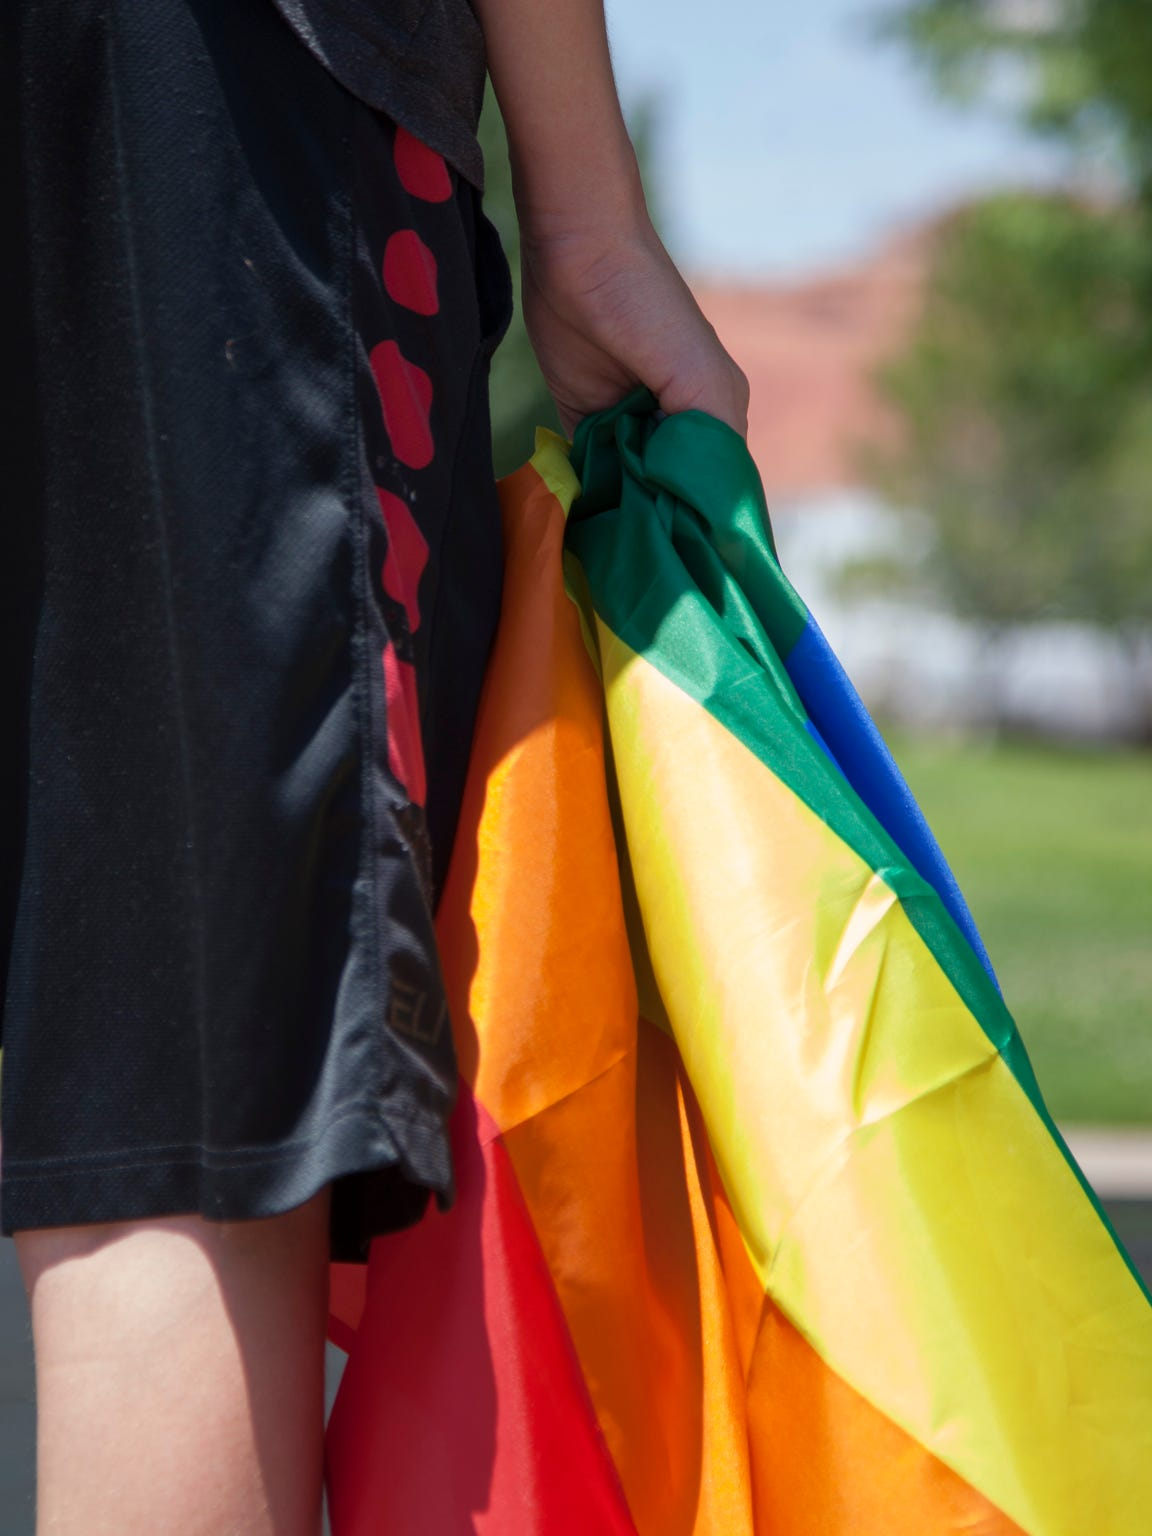 Youth who identify as transgender are 8 times more